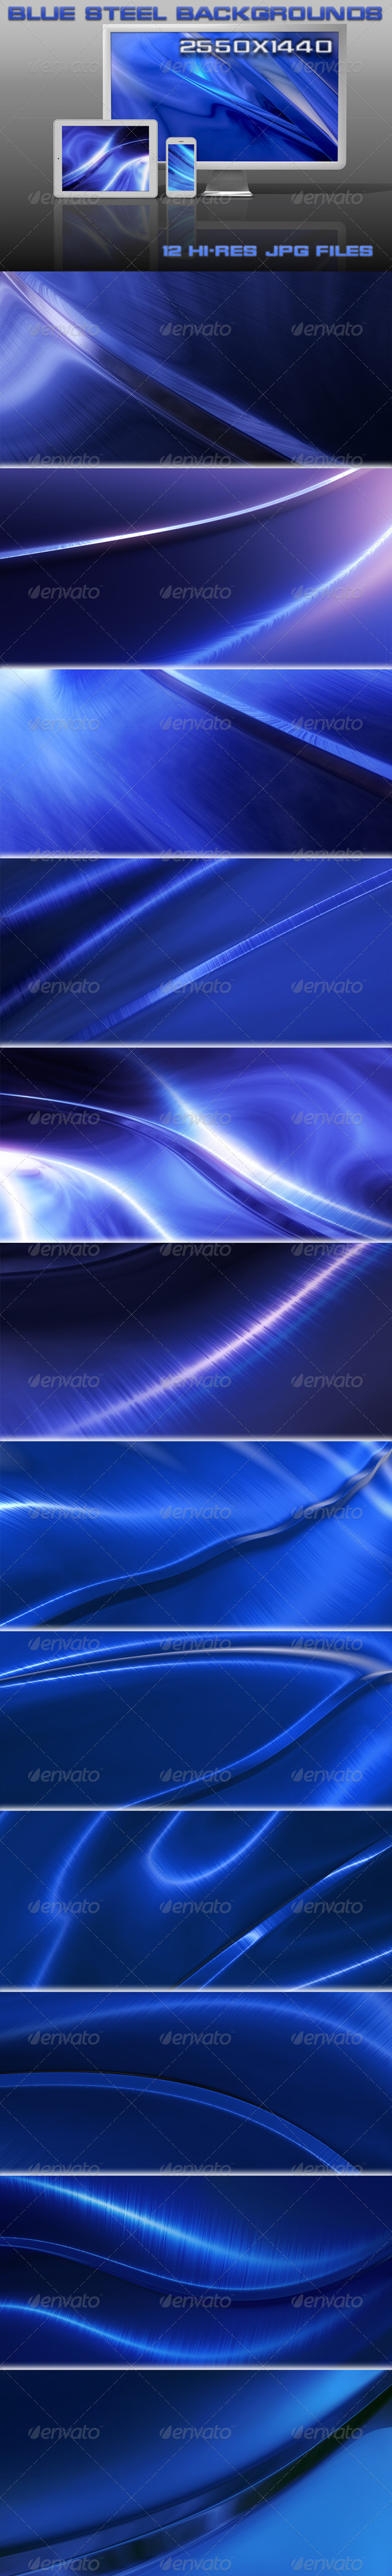 GraphicRiver Blue Steel Backgrounds 5344950